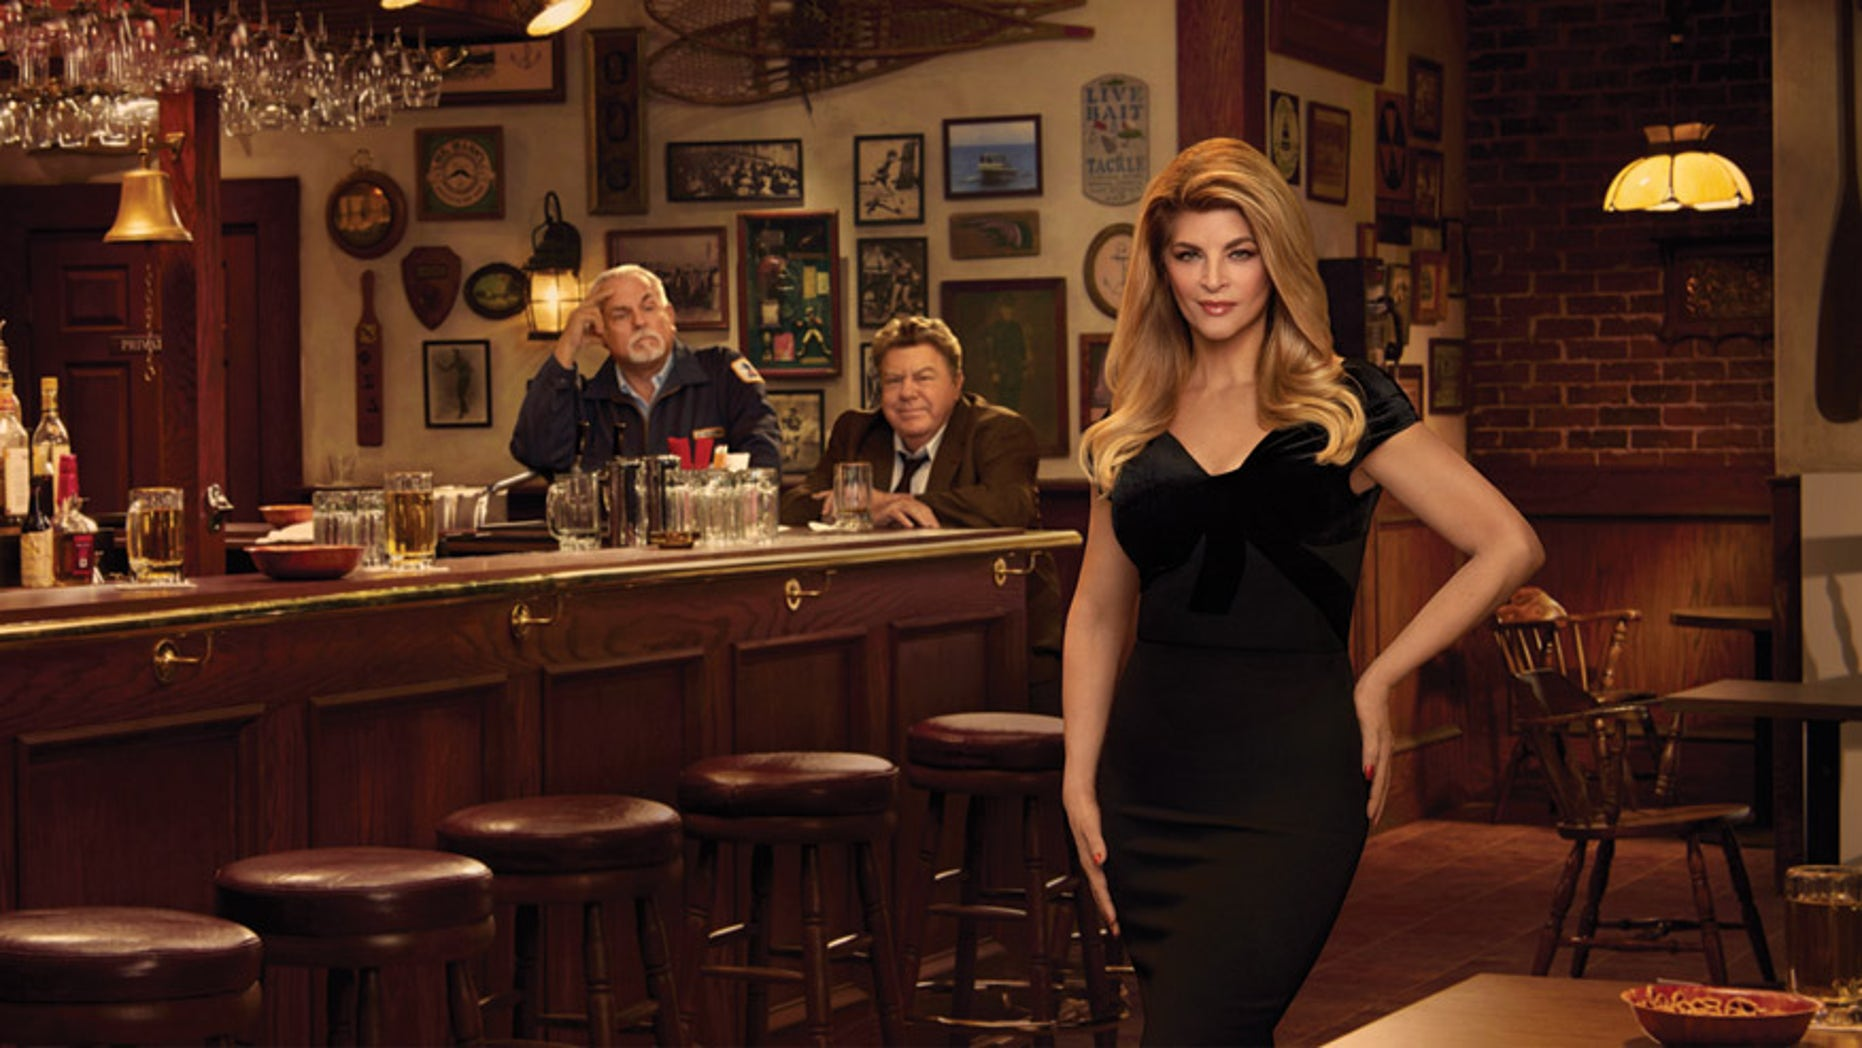 Naked kirstie alley hot really